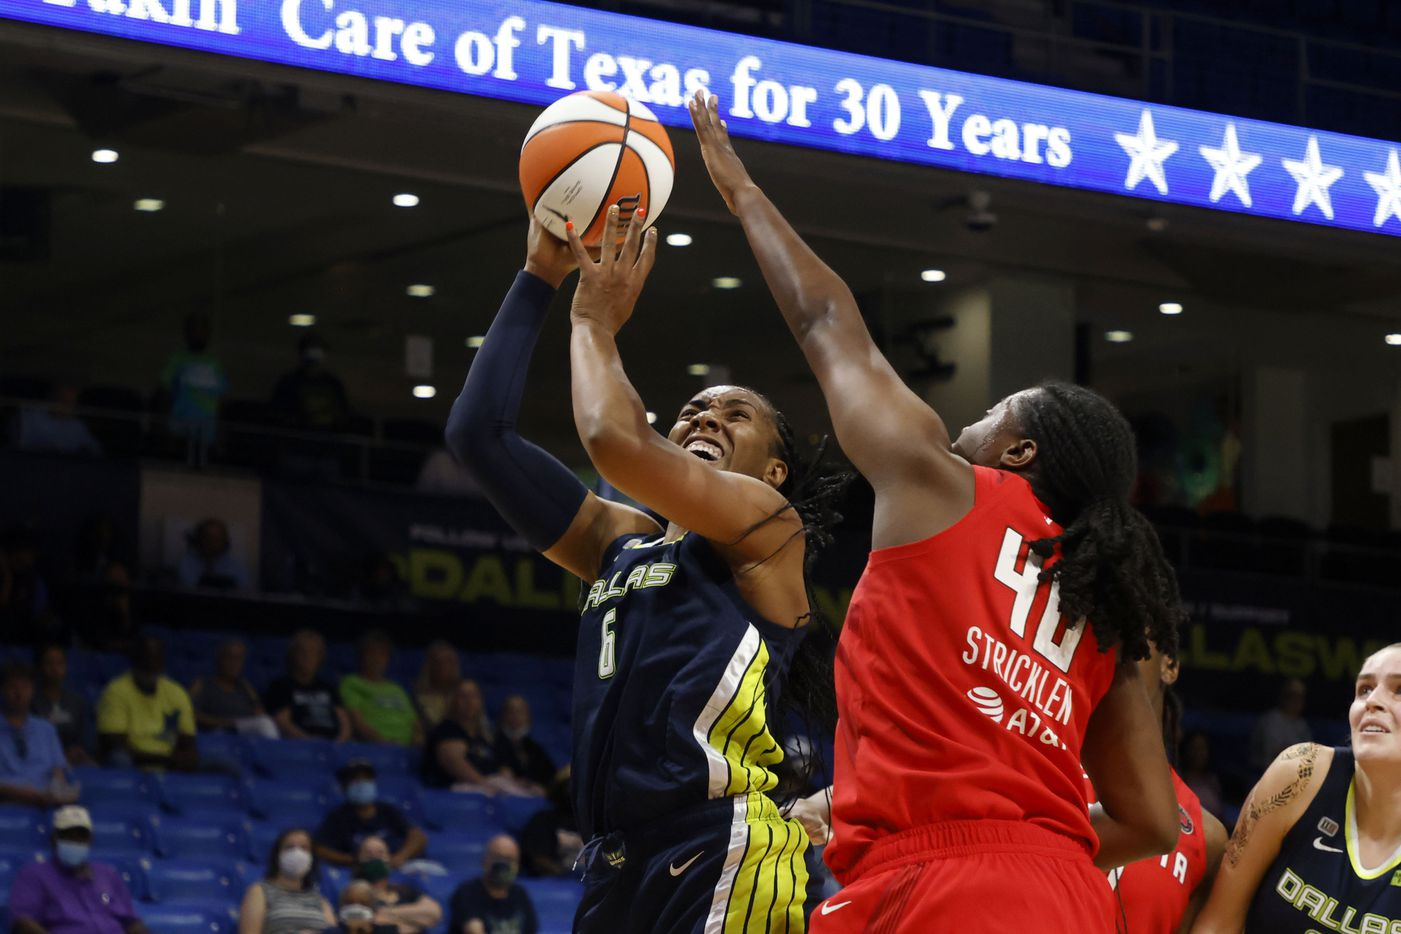 Dallas Wings forward Kayla Thornton (6)shoots in front of Atlanta Dream forward Shekinna Stricklen (40) during the first half of their WNBA basketball game in Arlington, Texas on Sept. 2, 2021. (Michael Ainsworth/Special Contributor)